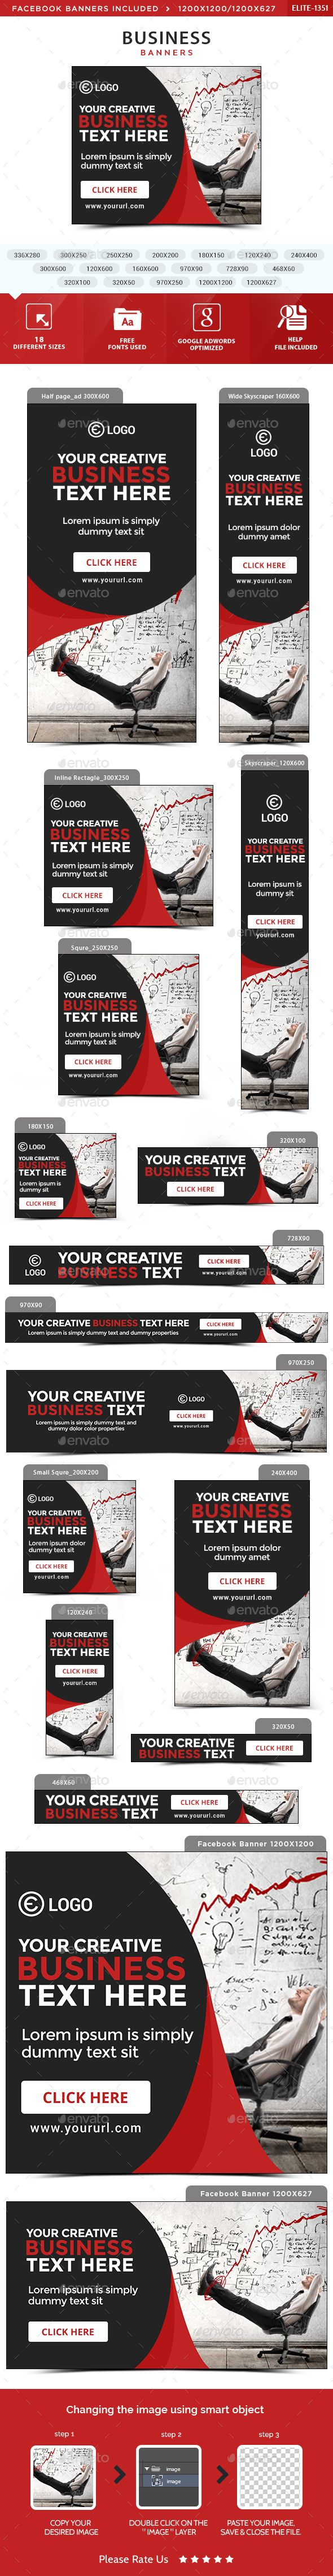 Business Banners   Banners, Psd templates and Banner template